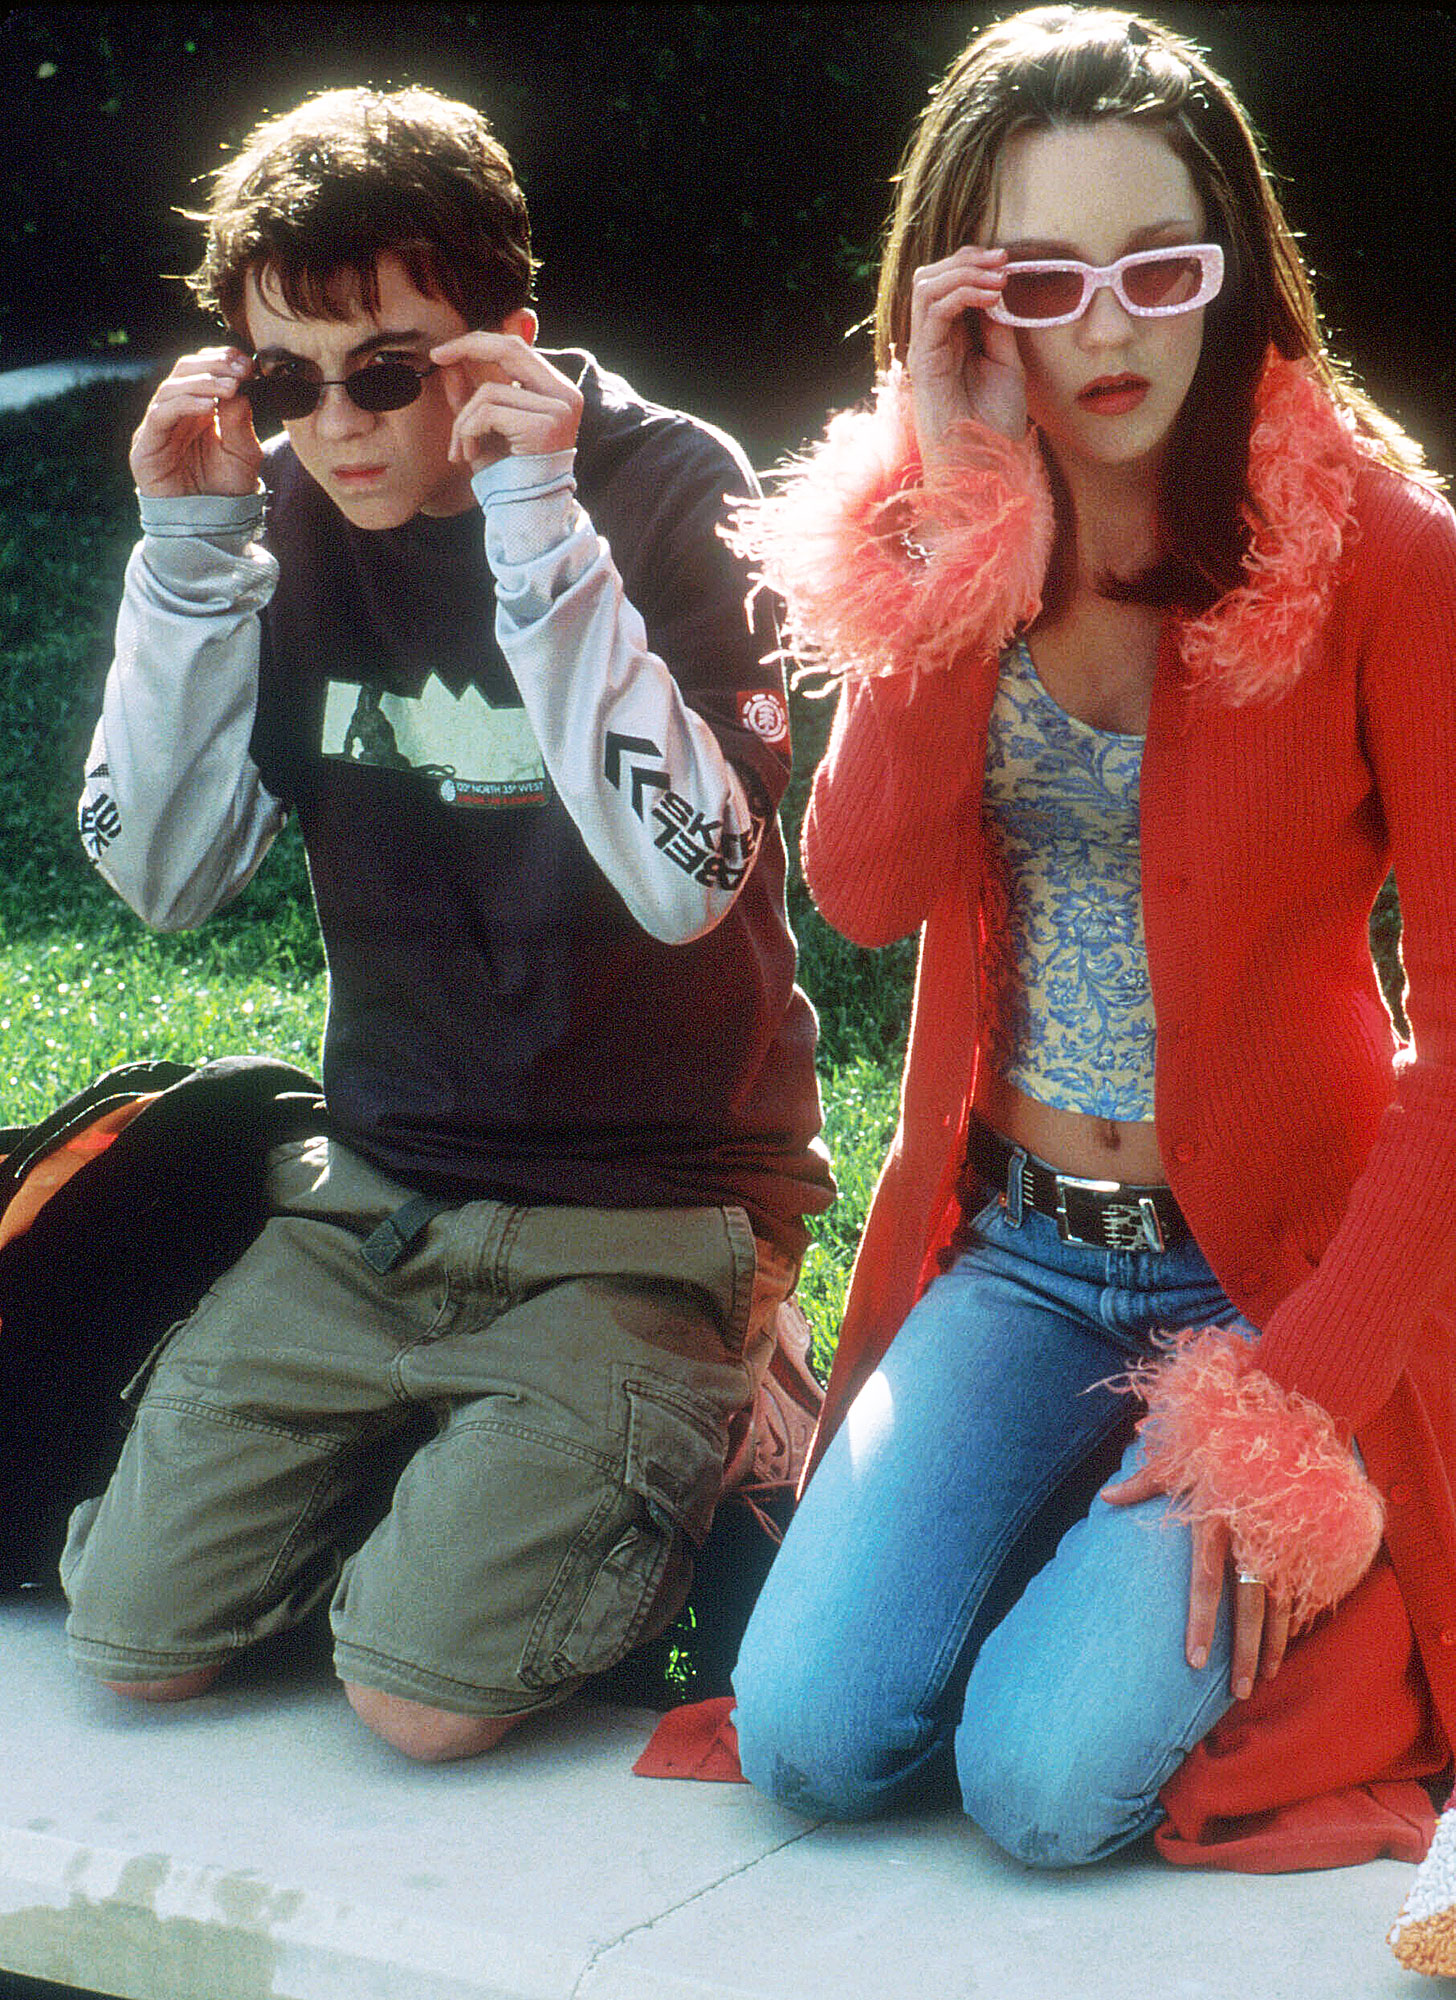 Amanda Bynes Through The Years Big Fat Liar - The actress made her feature film debut in 2002's Big Fat Liar , costarring Frankie Muniz . The movie, also starring Paul Giamatti and Sandra Oh , earned an impressive $48 million domestically.